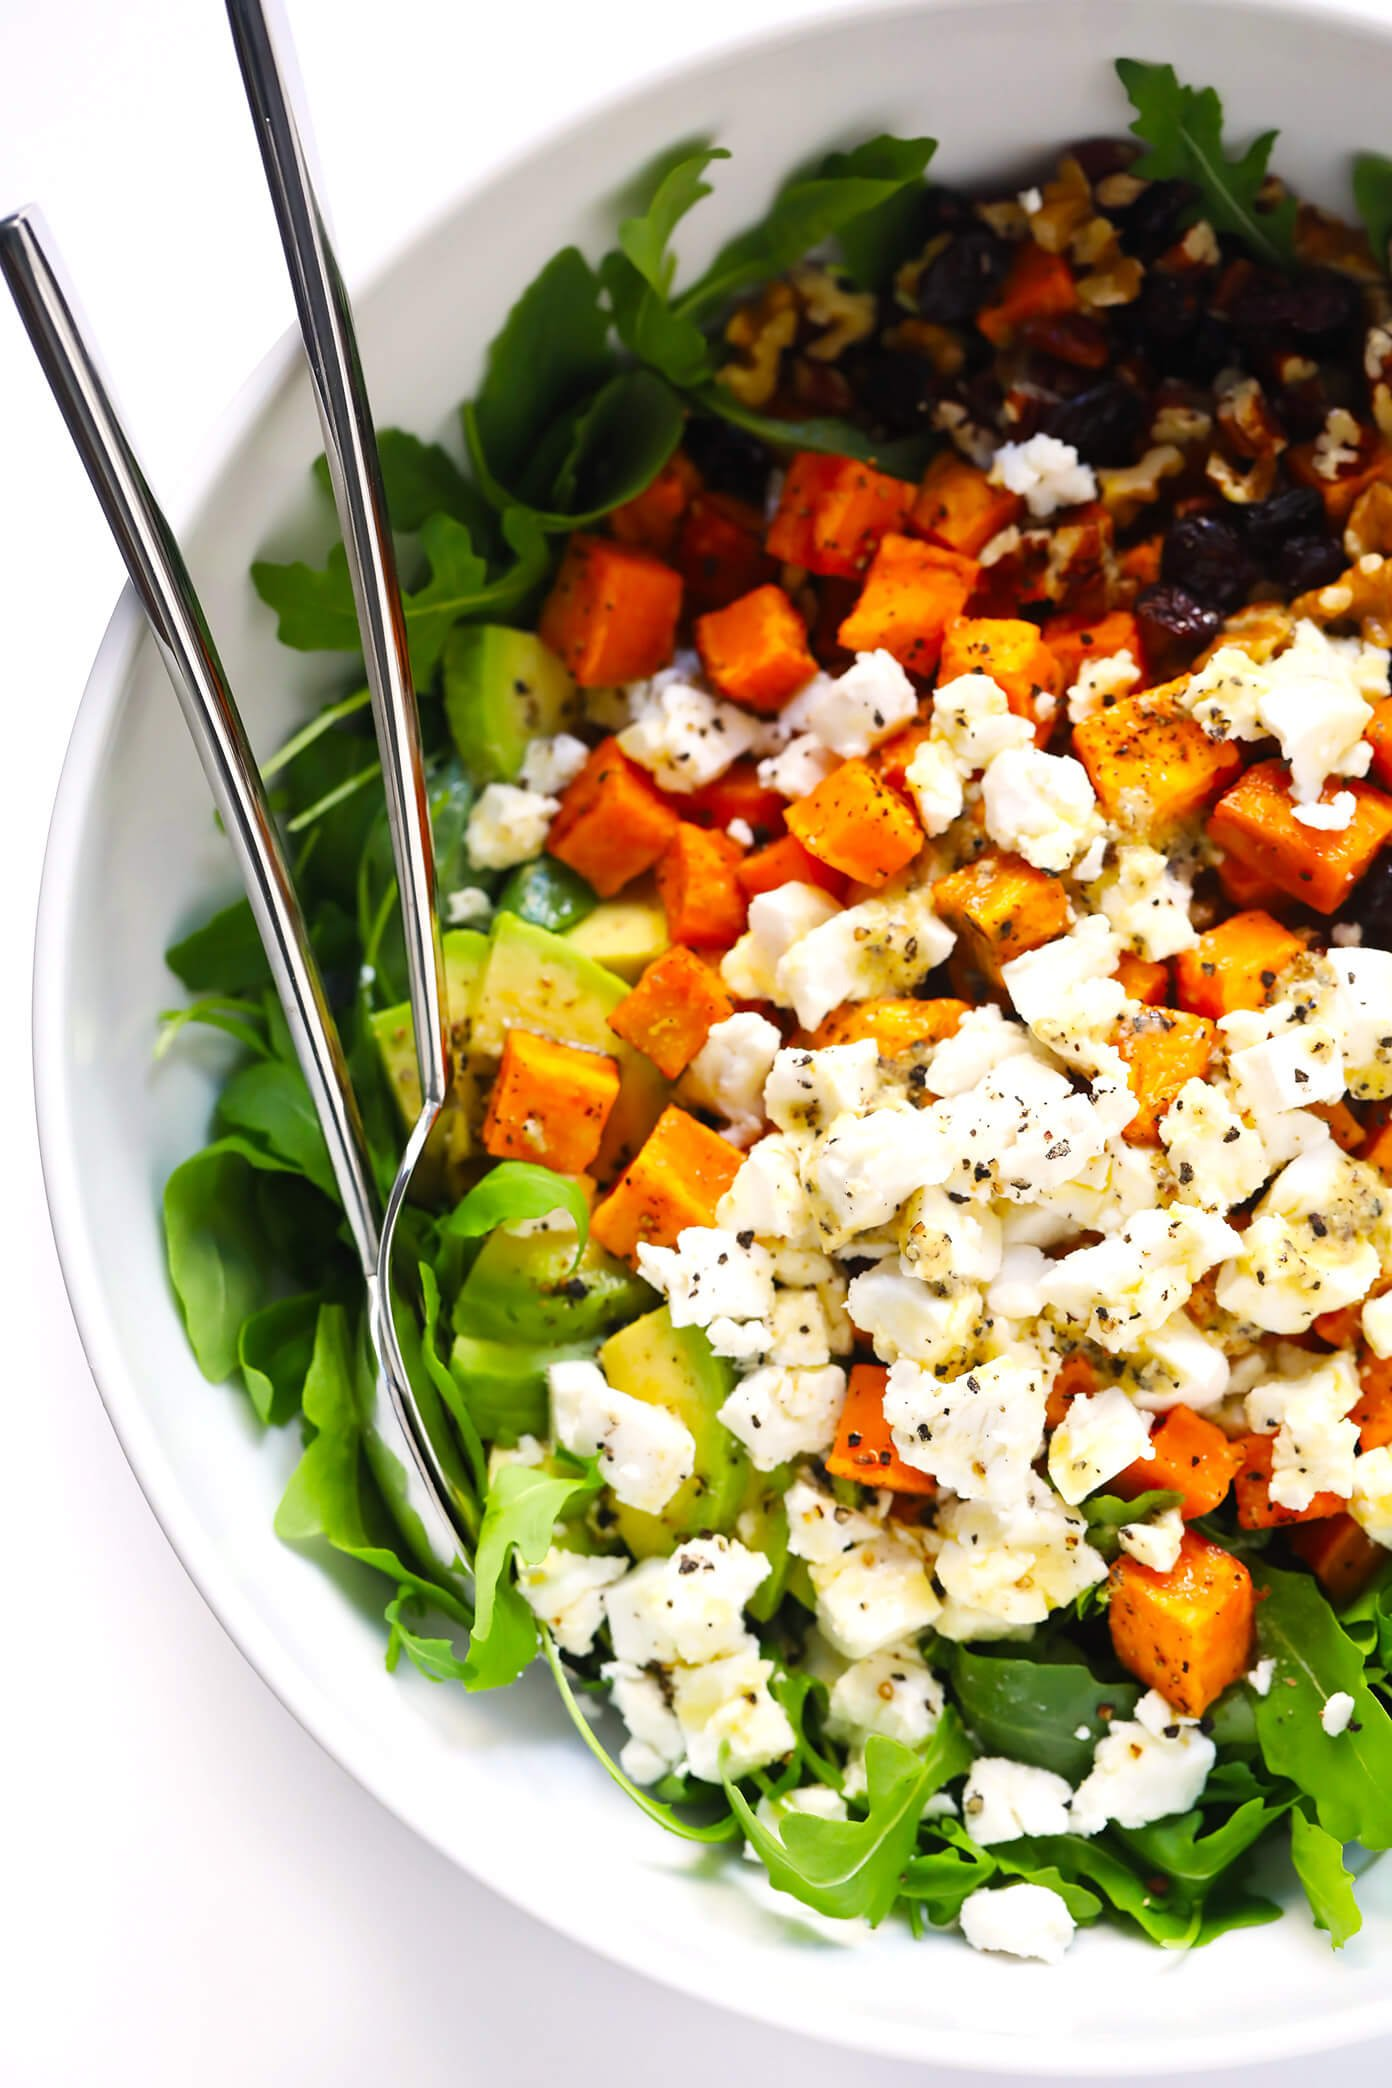 Feel-Good Fall Salad with Sweet Potato, Avocado, Goat Cheese and Lemon Dressing